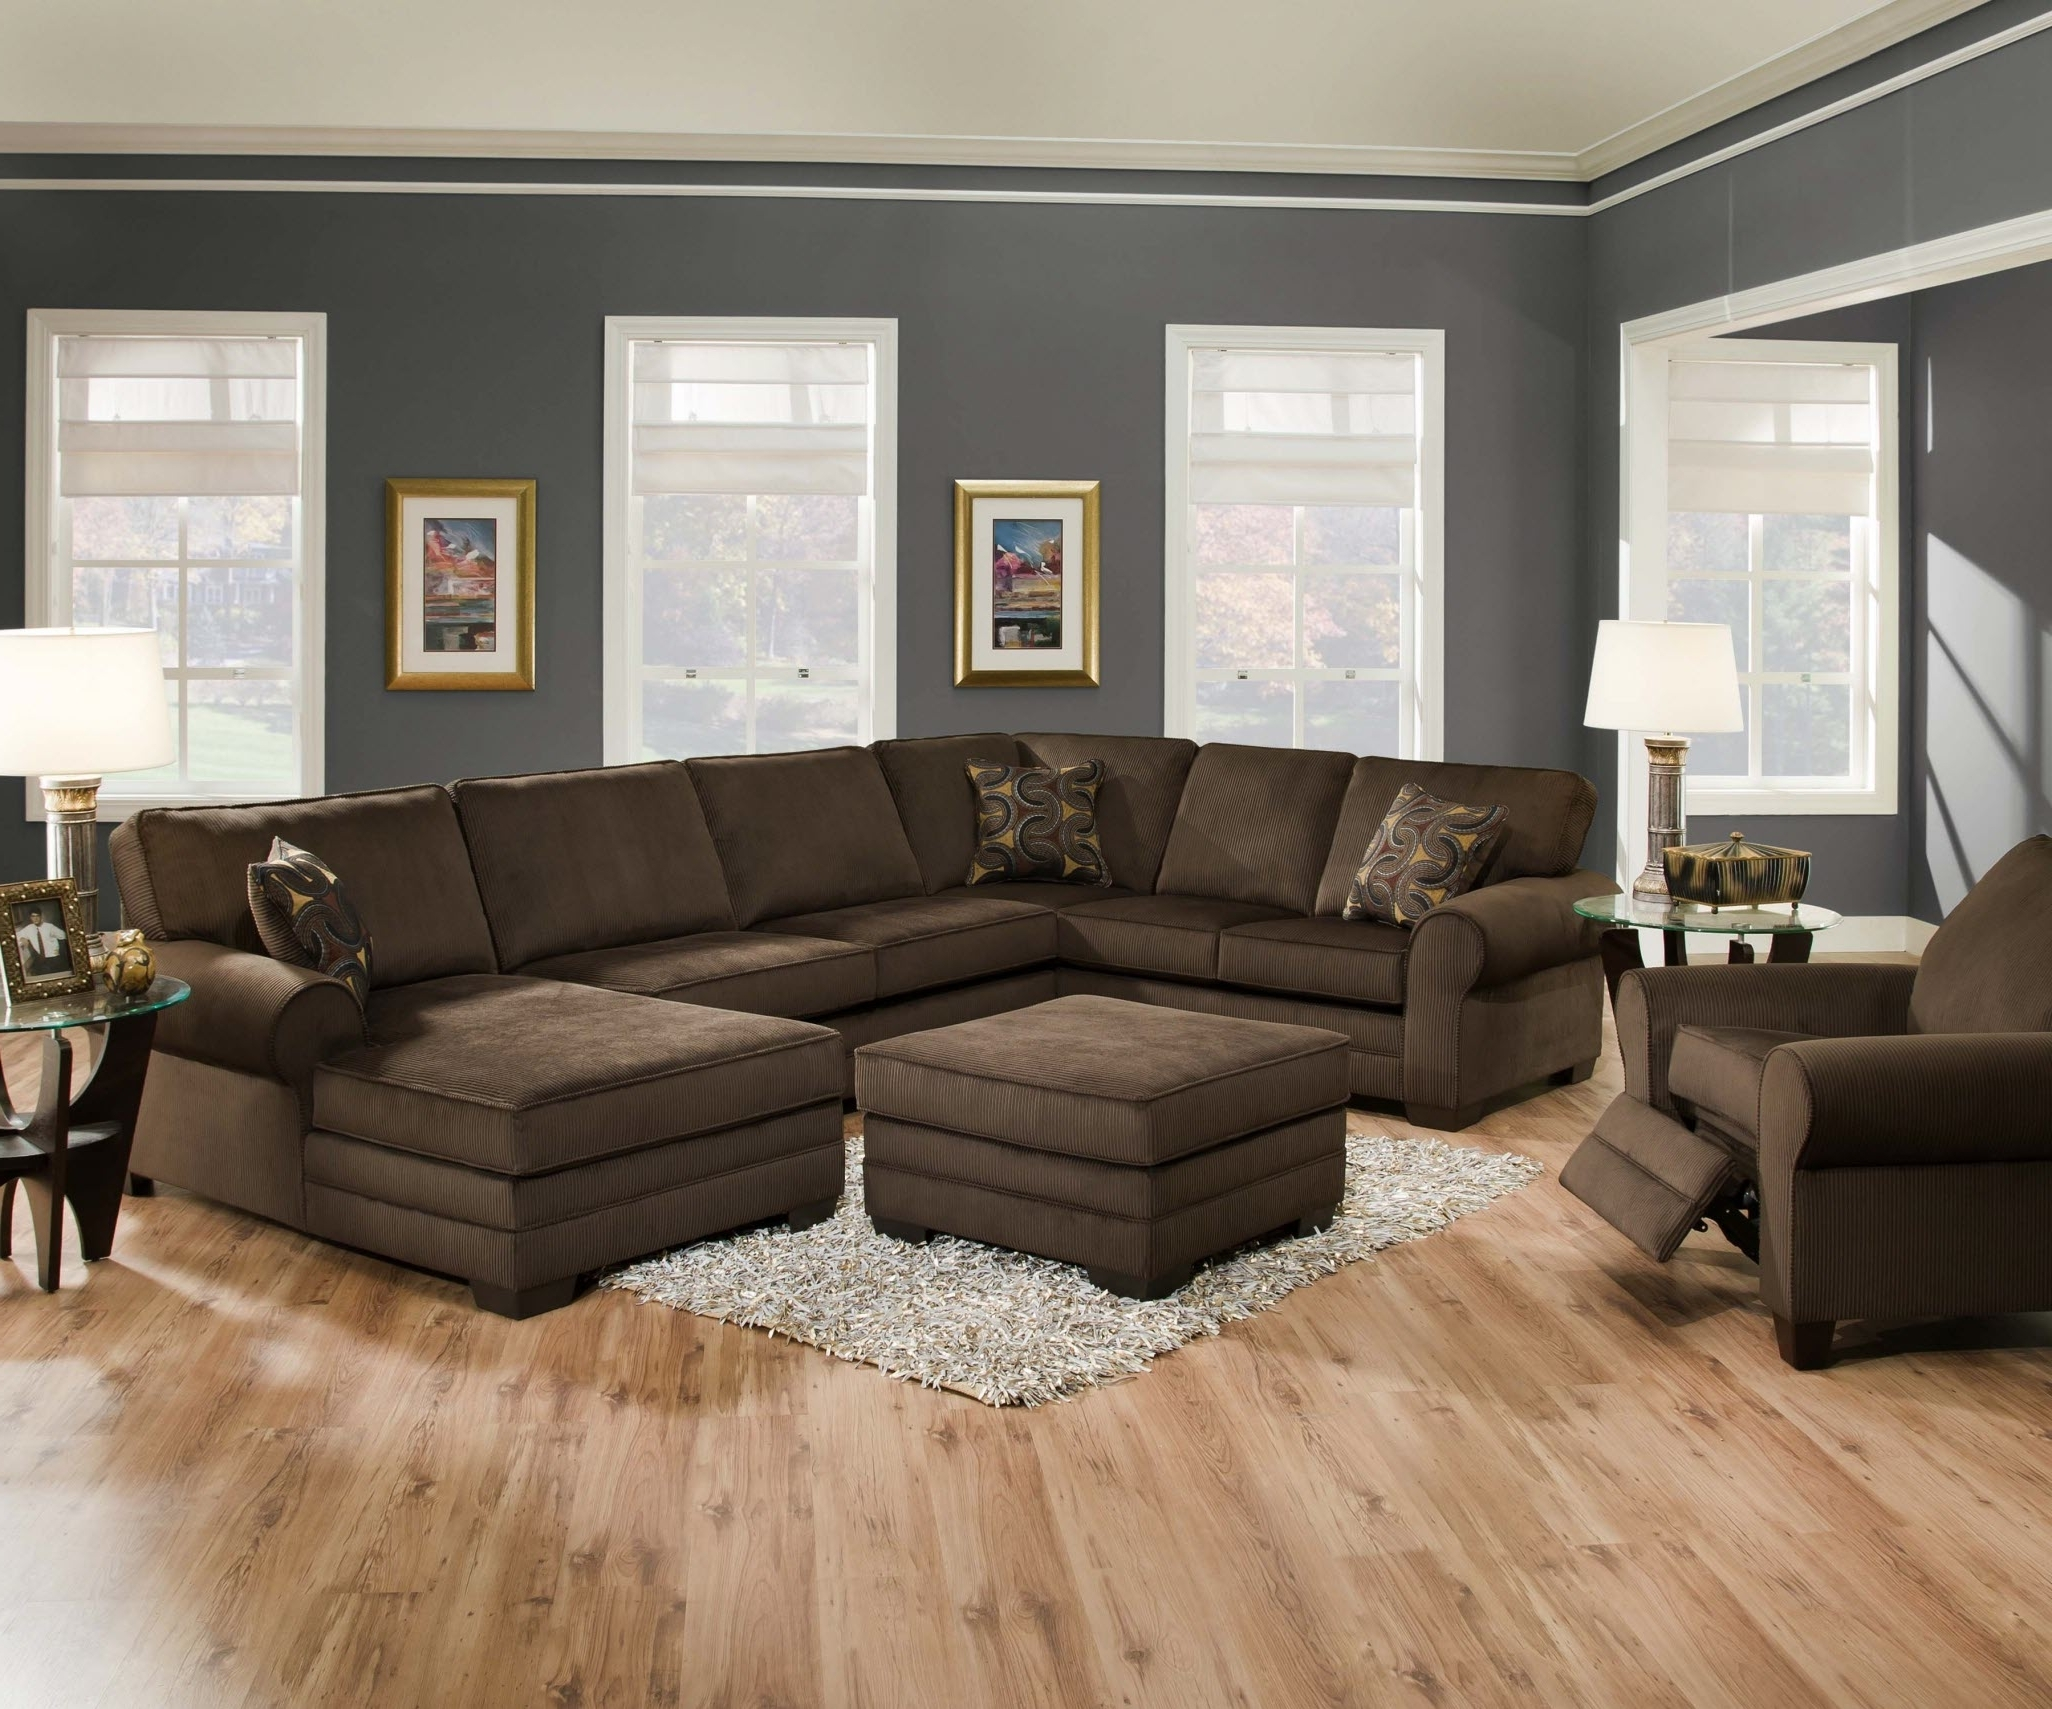 Most Recently Released Designssimmons – Simmons Deluxe Beluga Sectional With Regard To Simmons Sectional Sofas (View 11 of 20)